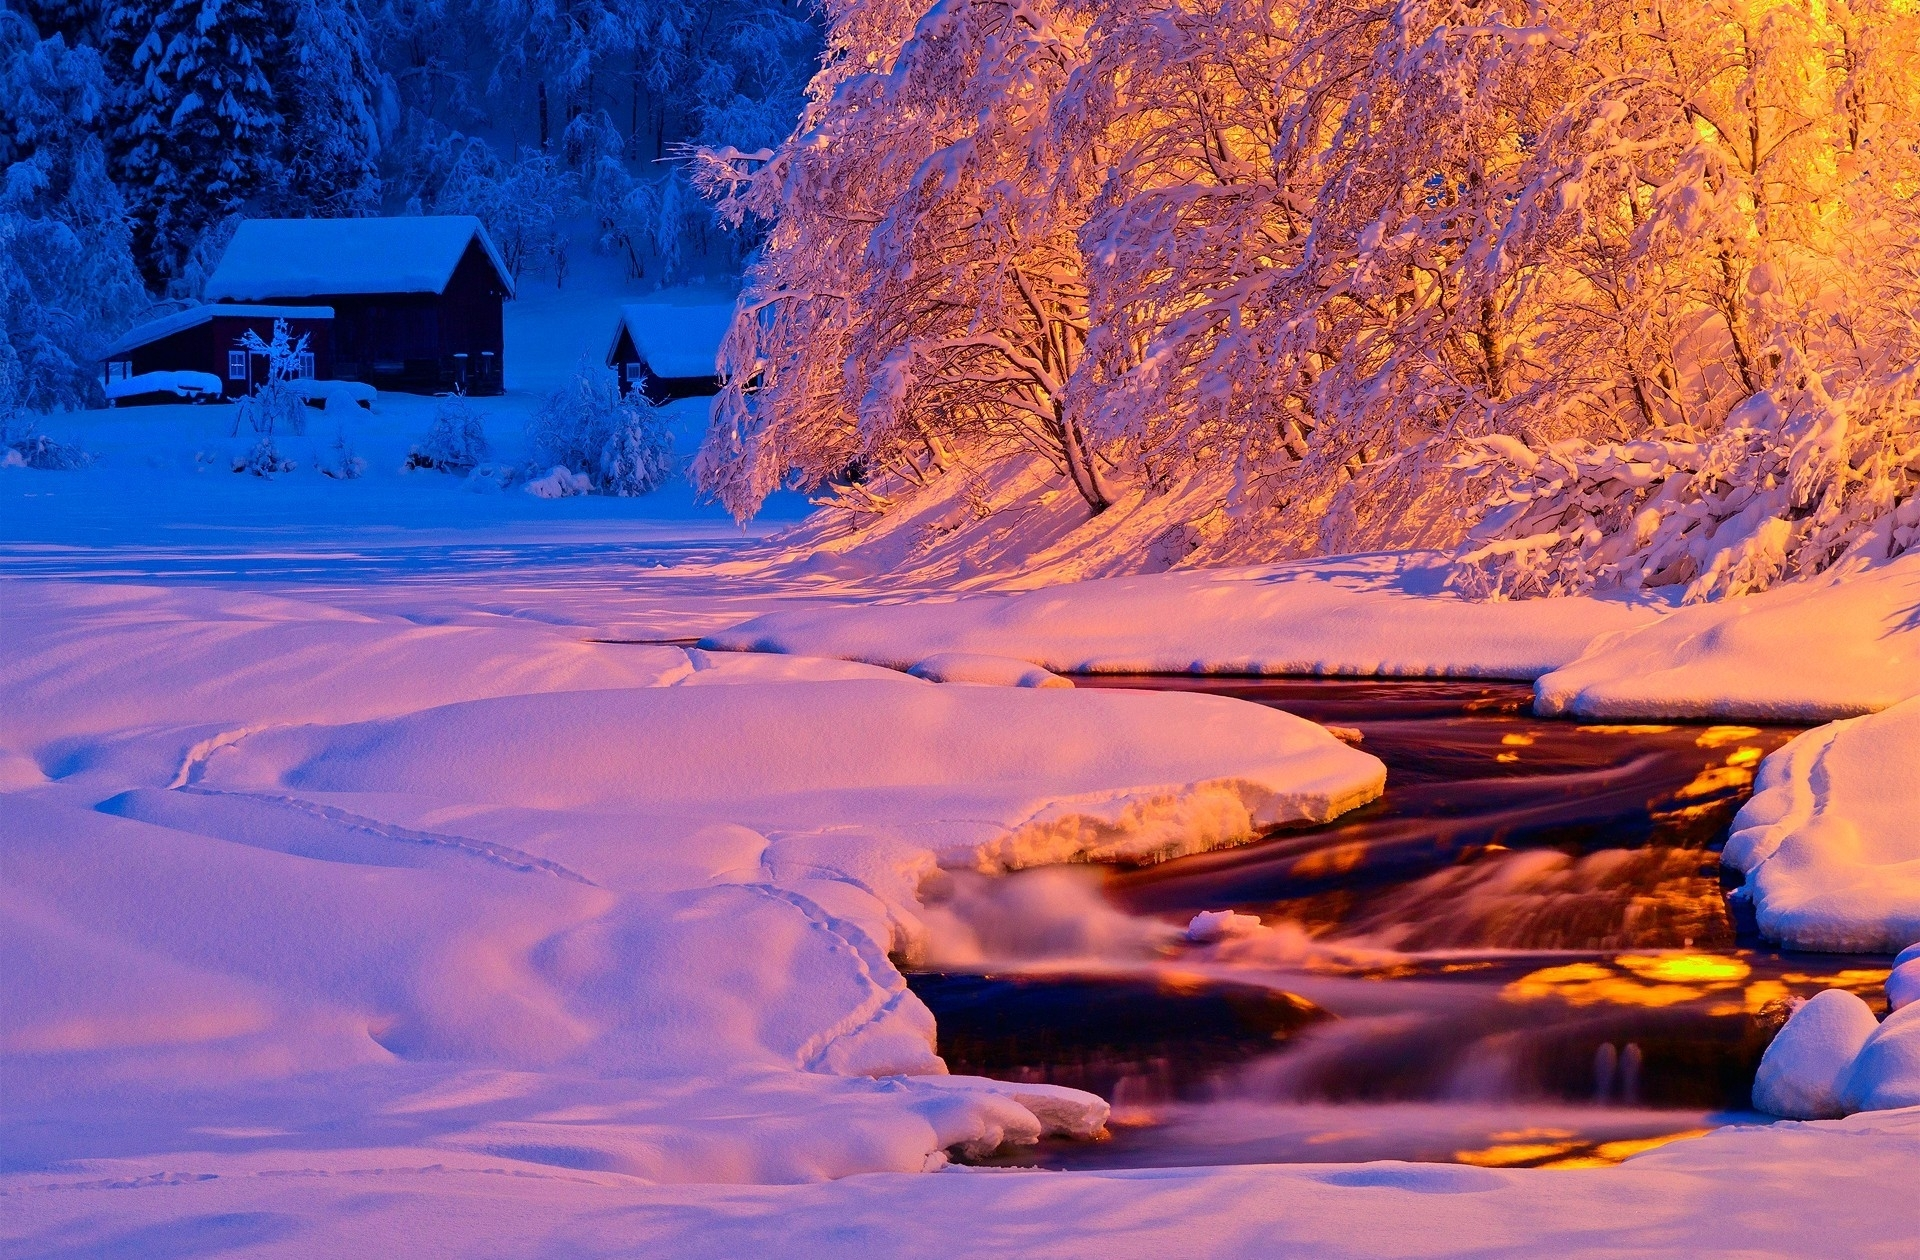 winter full hd wallpaper and background image | 1920x1260 | id:544209